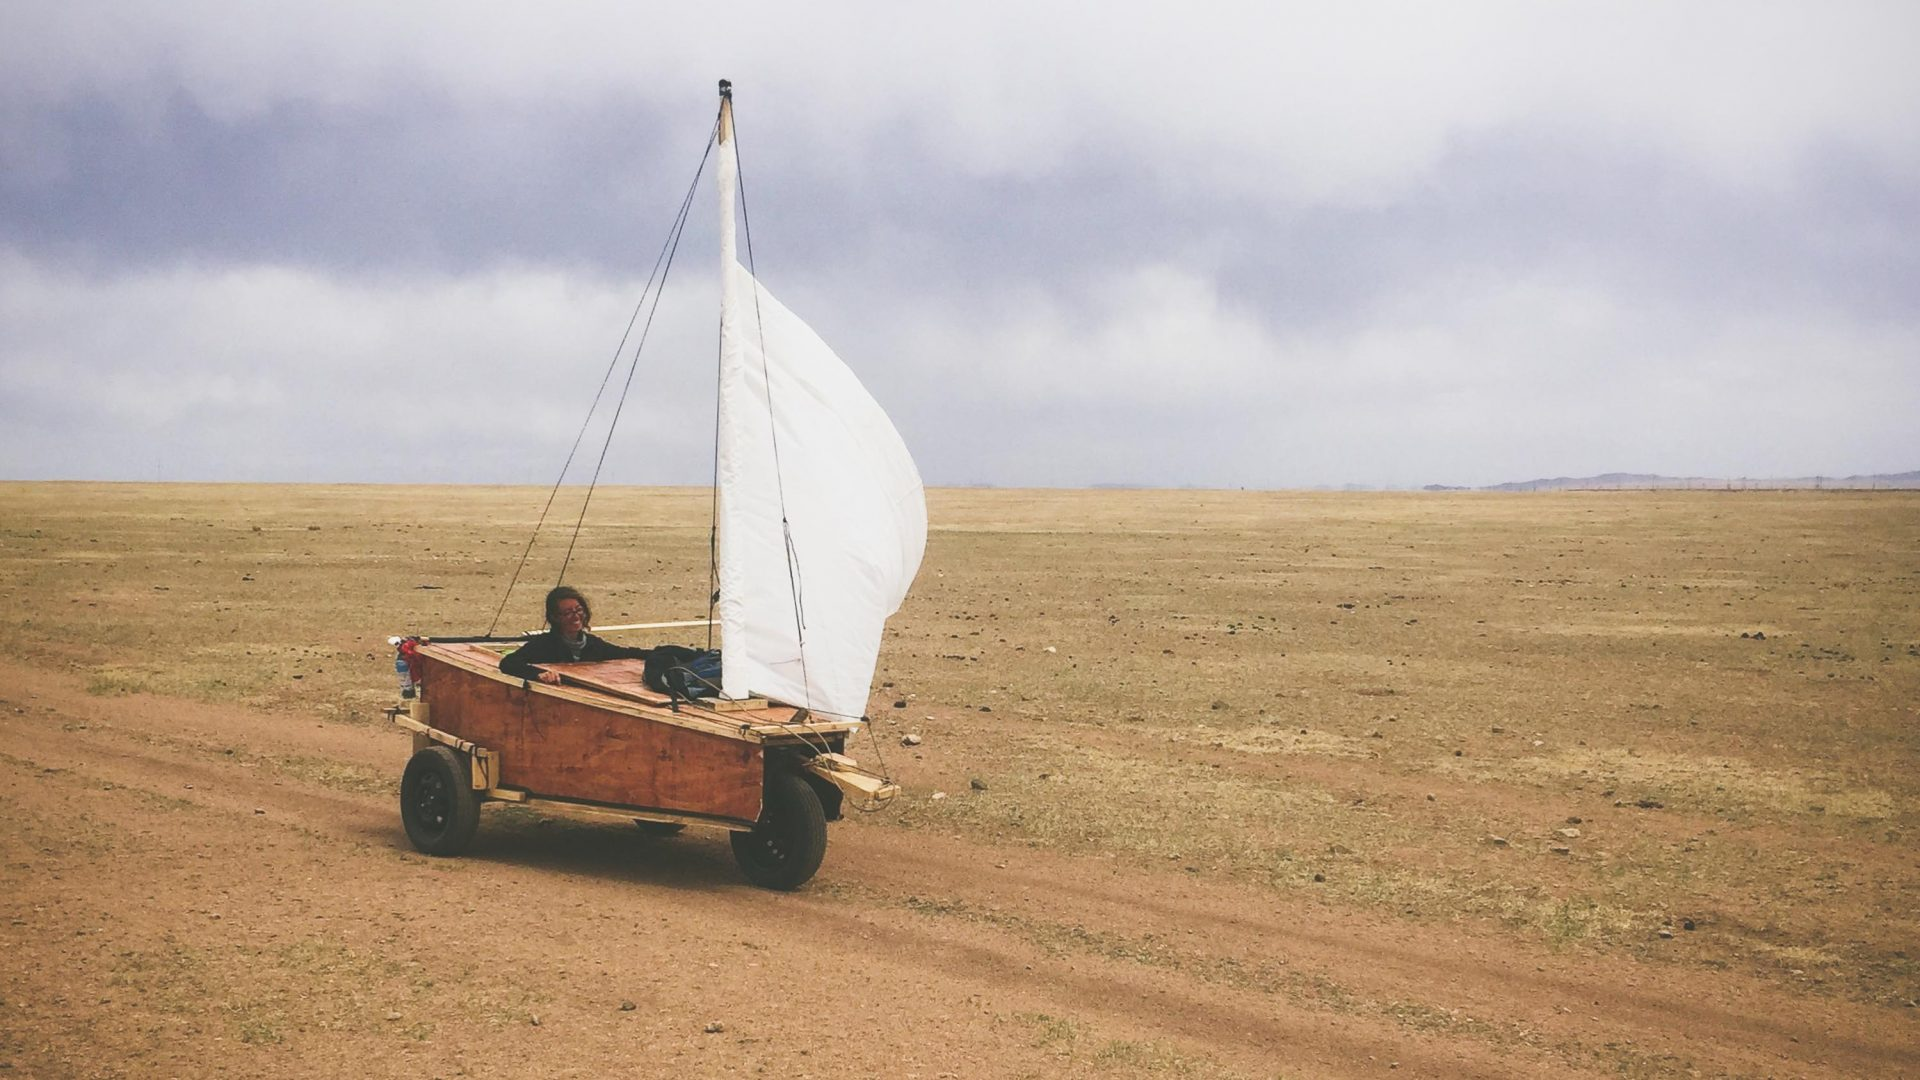 Meet the couple who sailed across Mongolia in a handmade cart